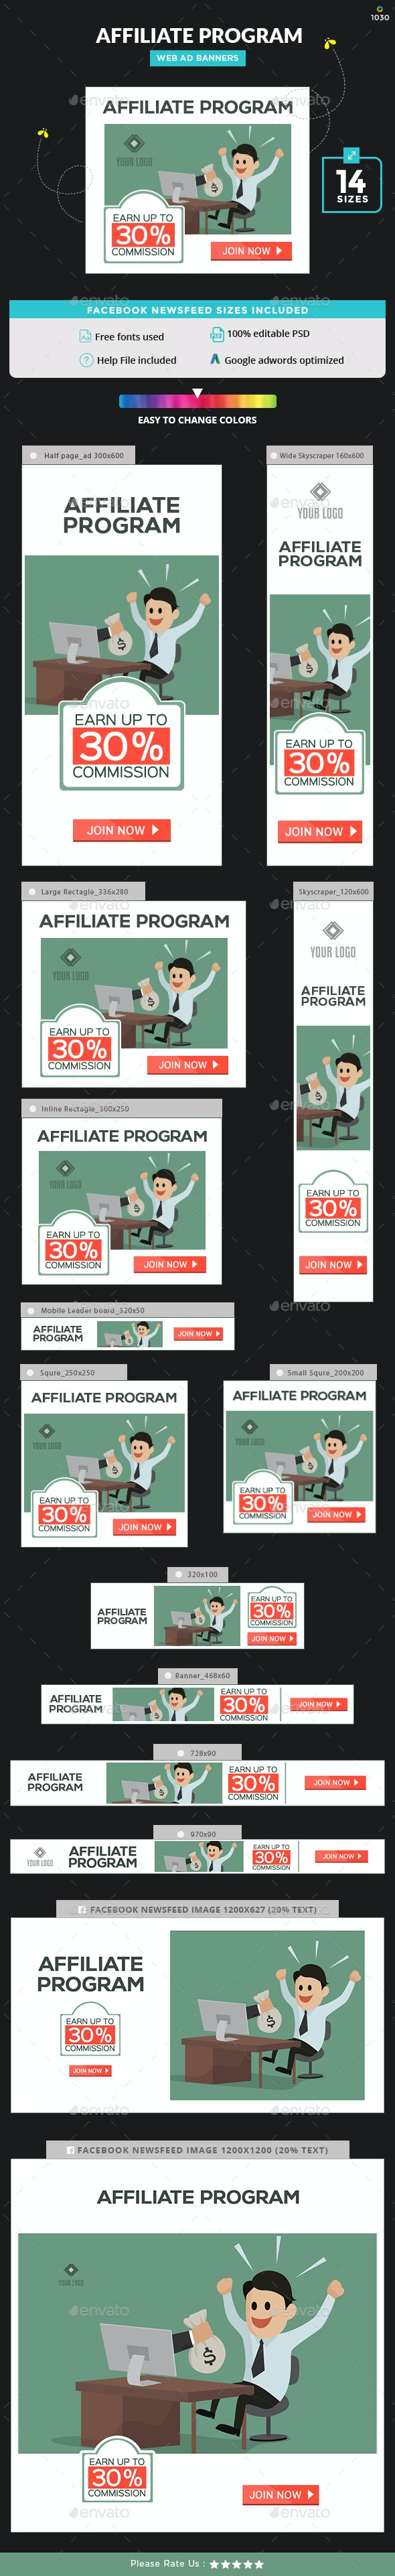 Web Banner Design for Affiliate Program - Image Included. - Banners & Ads Web Elements